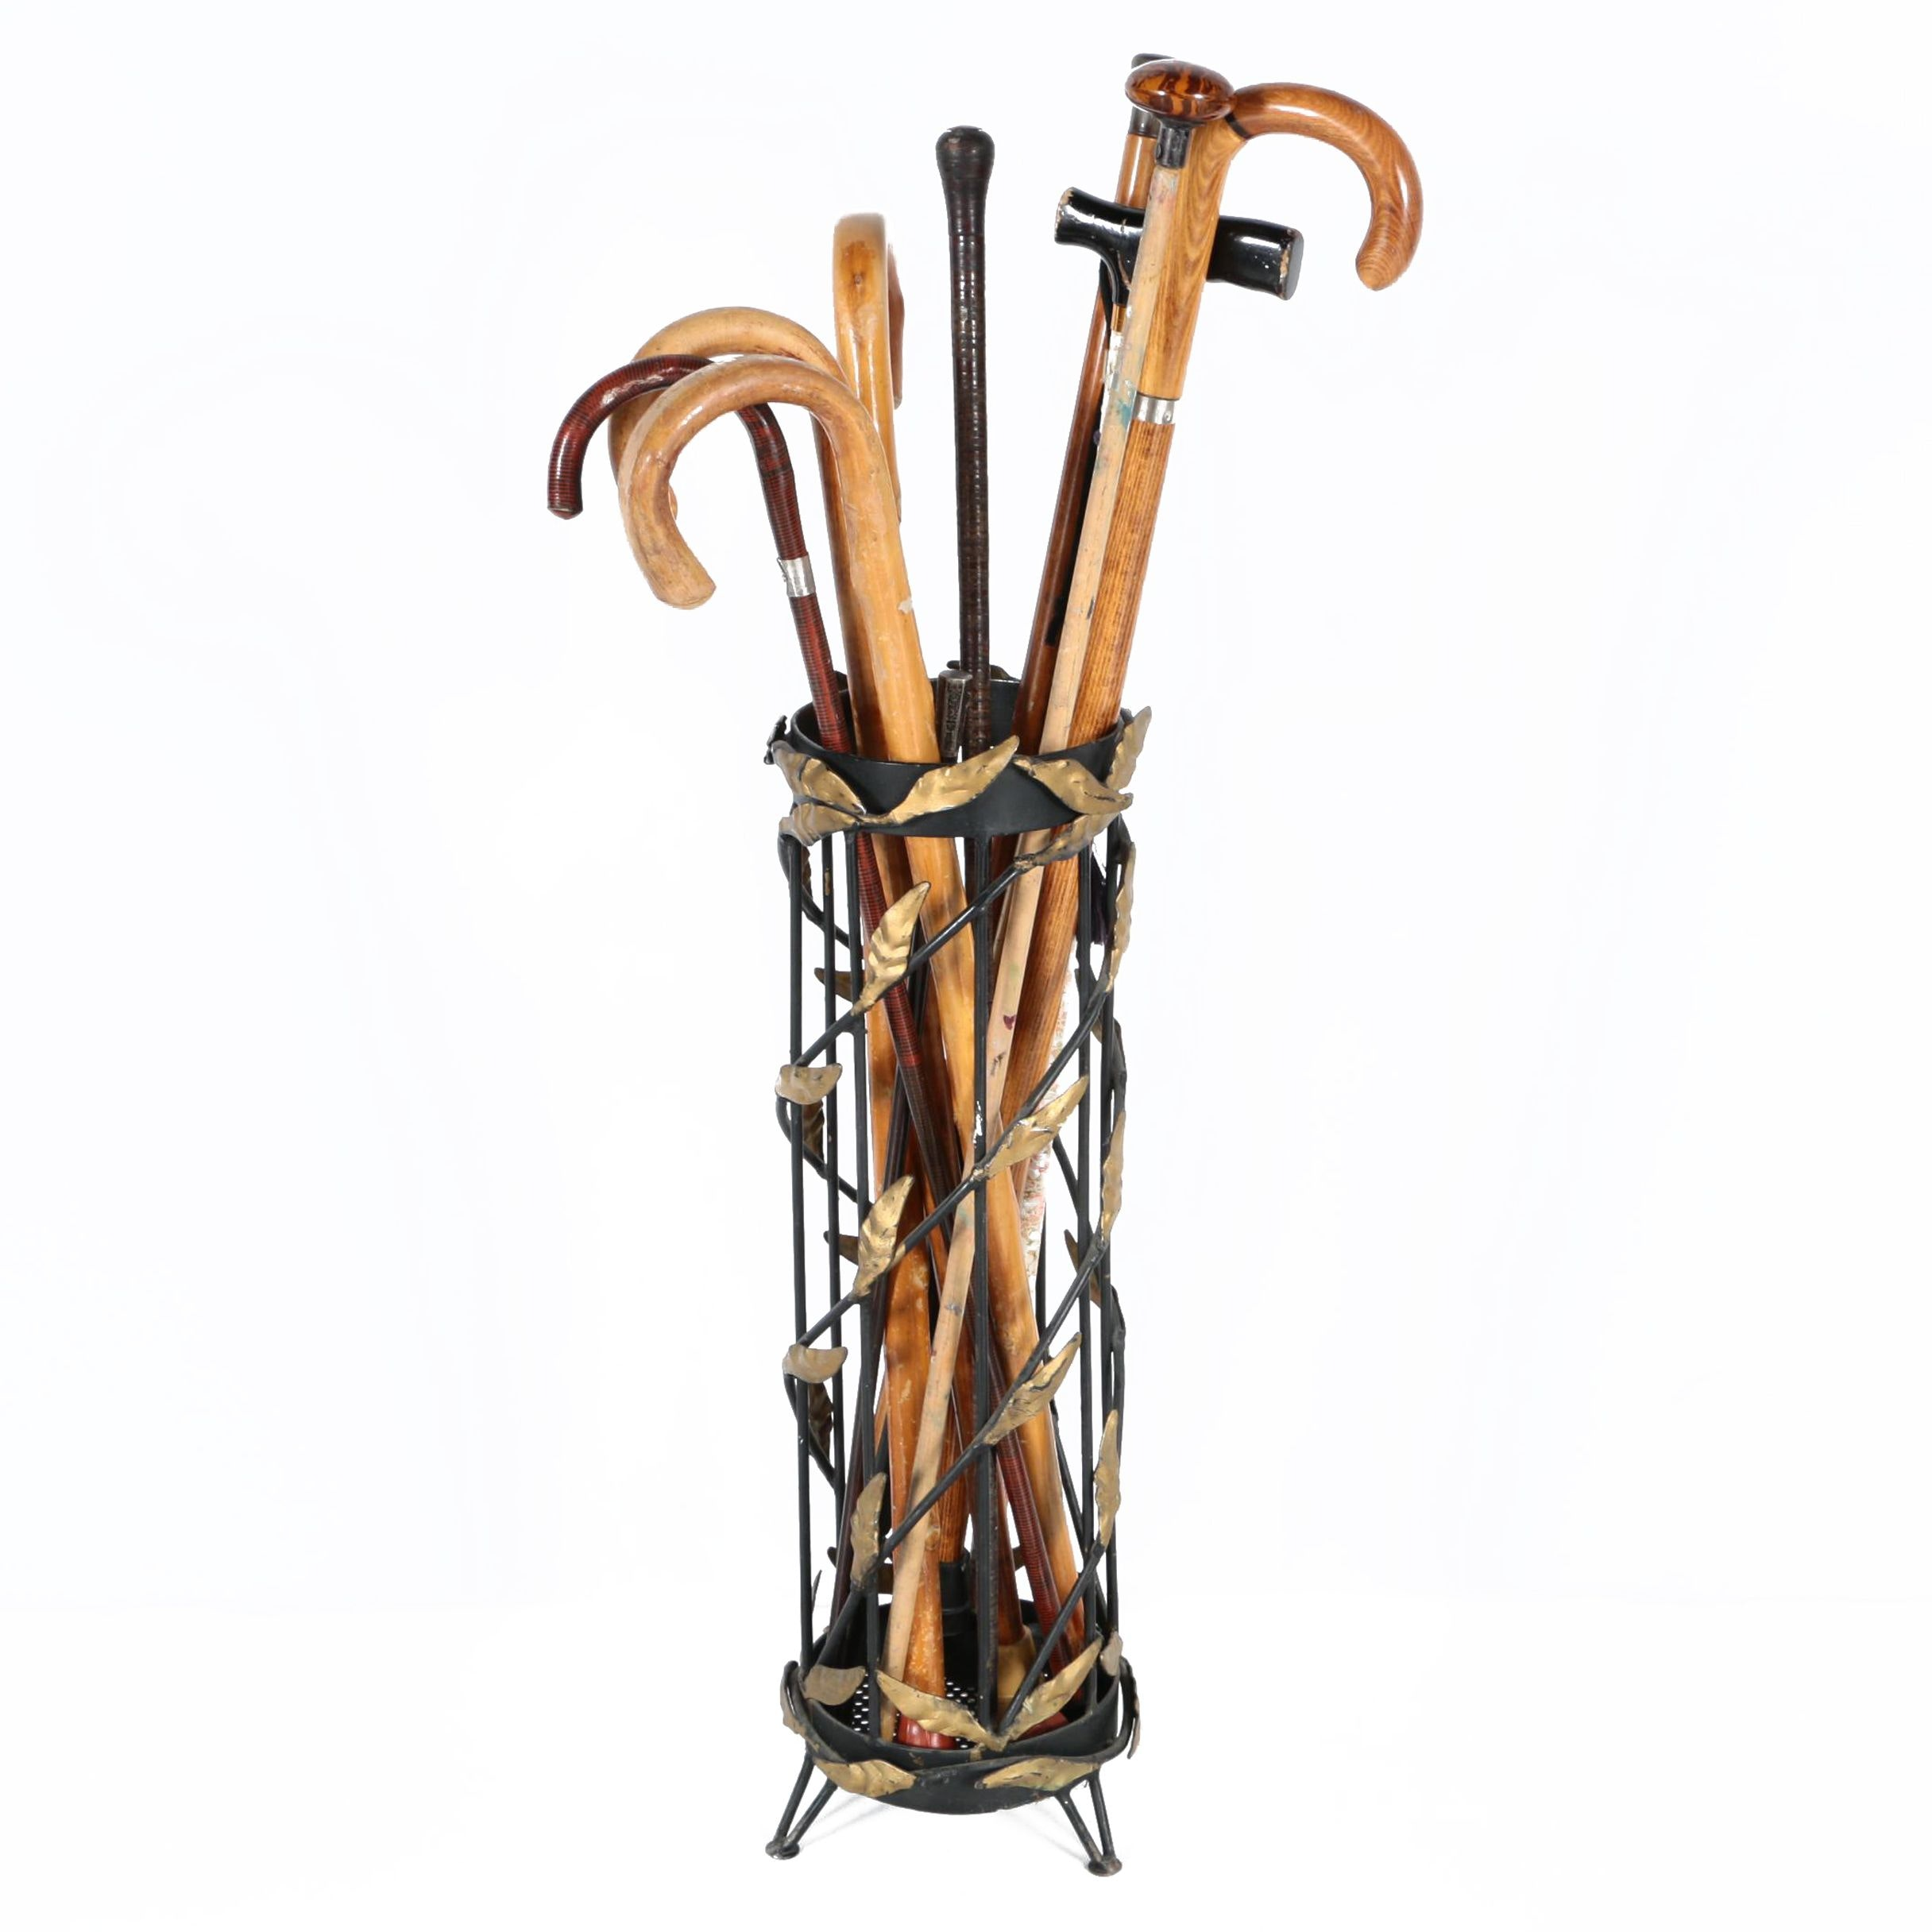 Canes and Walking Sticks Including Cane Sword and Metal Stand